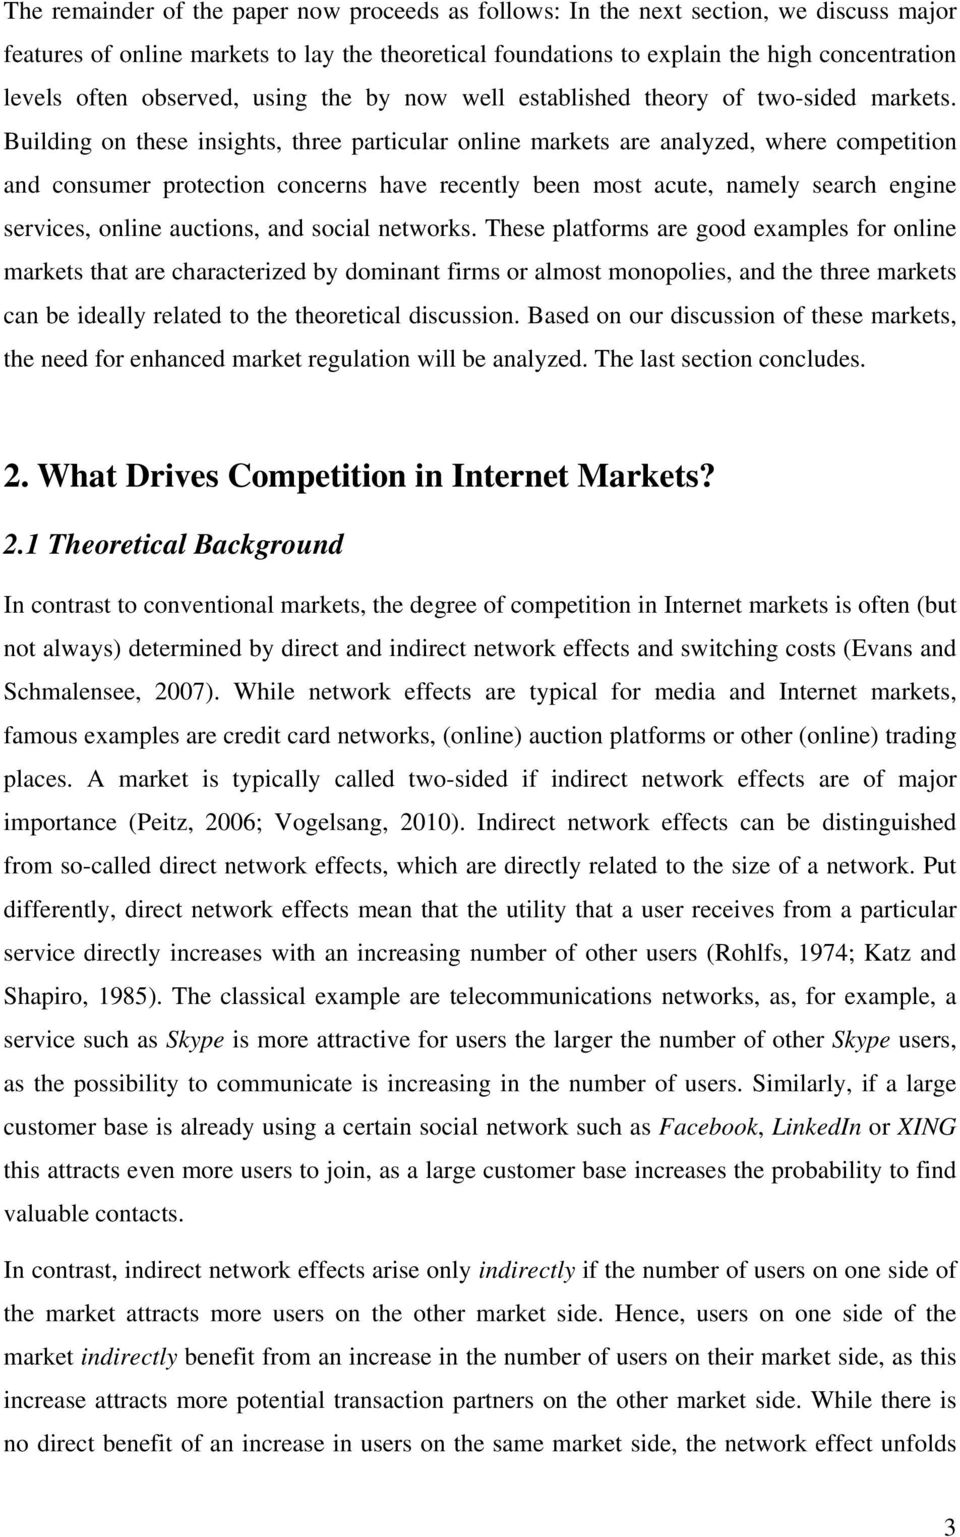 Building on these insights, three particular online markets are analyzed, where competition and consumer protection concerns have recently been most acute, namely search engine services, online